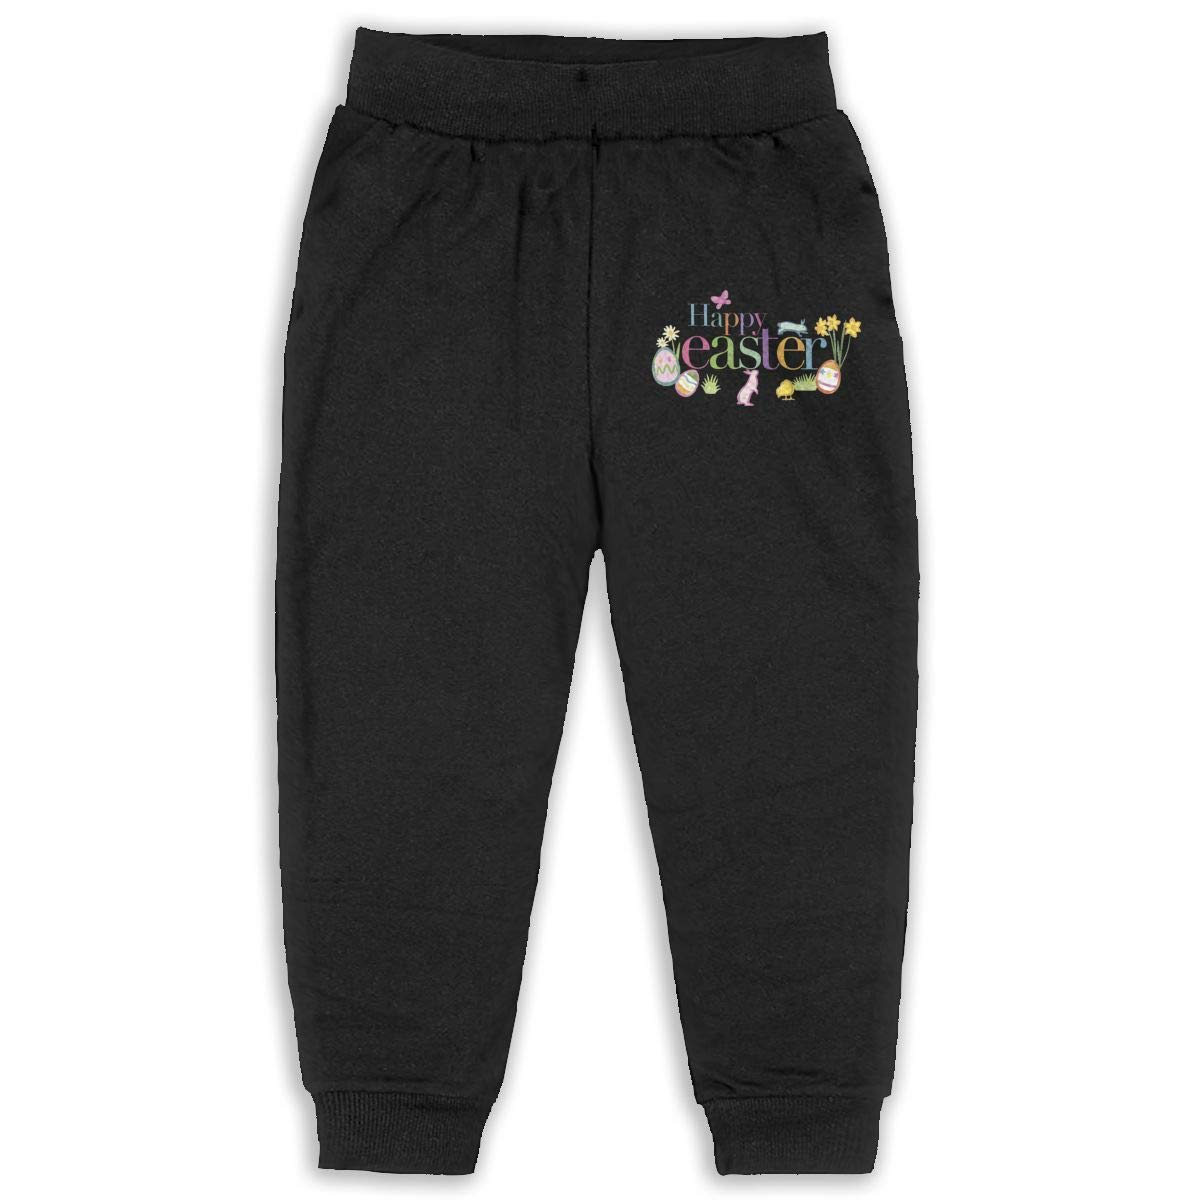 Nyanhif Design Happy Easter Pants for Child Black